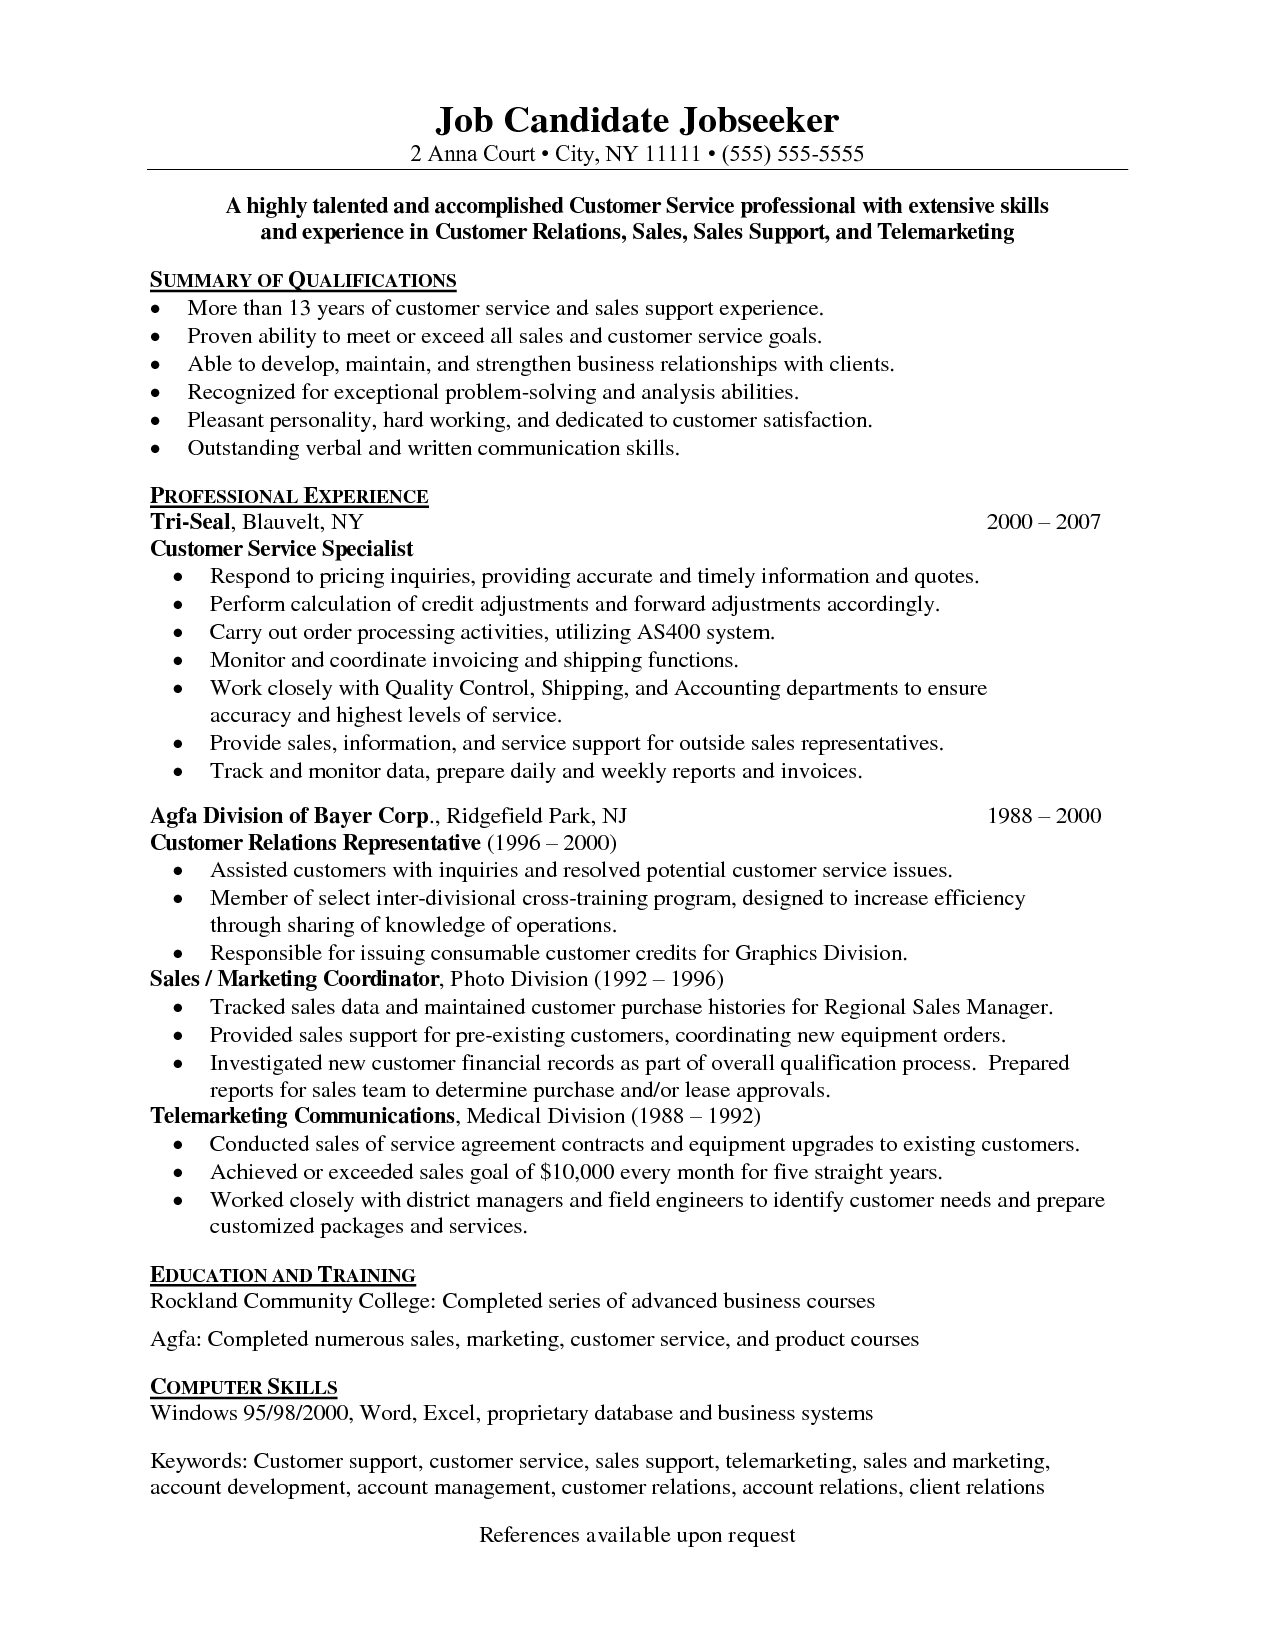 Opposenewapstandardsus  Scenic Customer Service Resume Format  Roiinvestingcom With Exciting Customer Service Resume Format  With Cool Business Resume Format Also Photo Resume In Addition Language On Resume And Summary Of Skills For Resume As Well As Skills And Abilities Resume Example Additionally Winway Resume Free From Roiinvestingcom With Opposenewapstandardsus  Exciting Customer Service Resume Format  Roiinvestingcom With Cool Customer Service Resume Format  And Scenic Business Resume Format Also Photo Resume In Addition Language On Resume From Roiinvestingcom